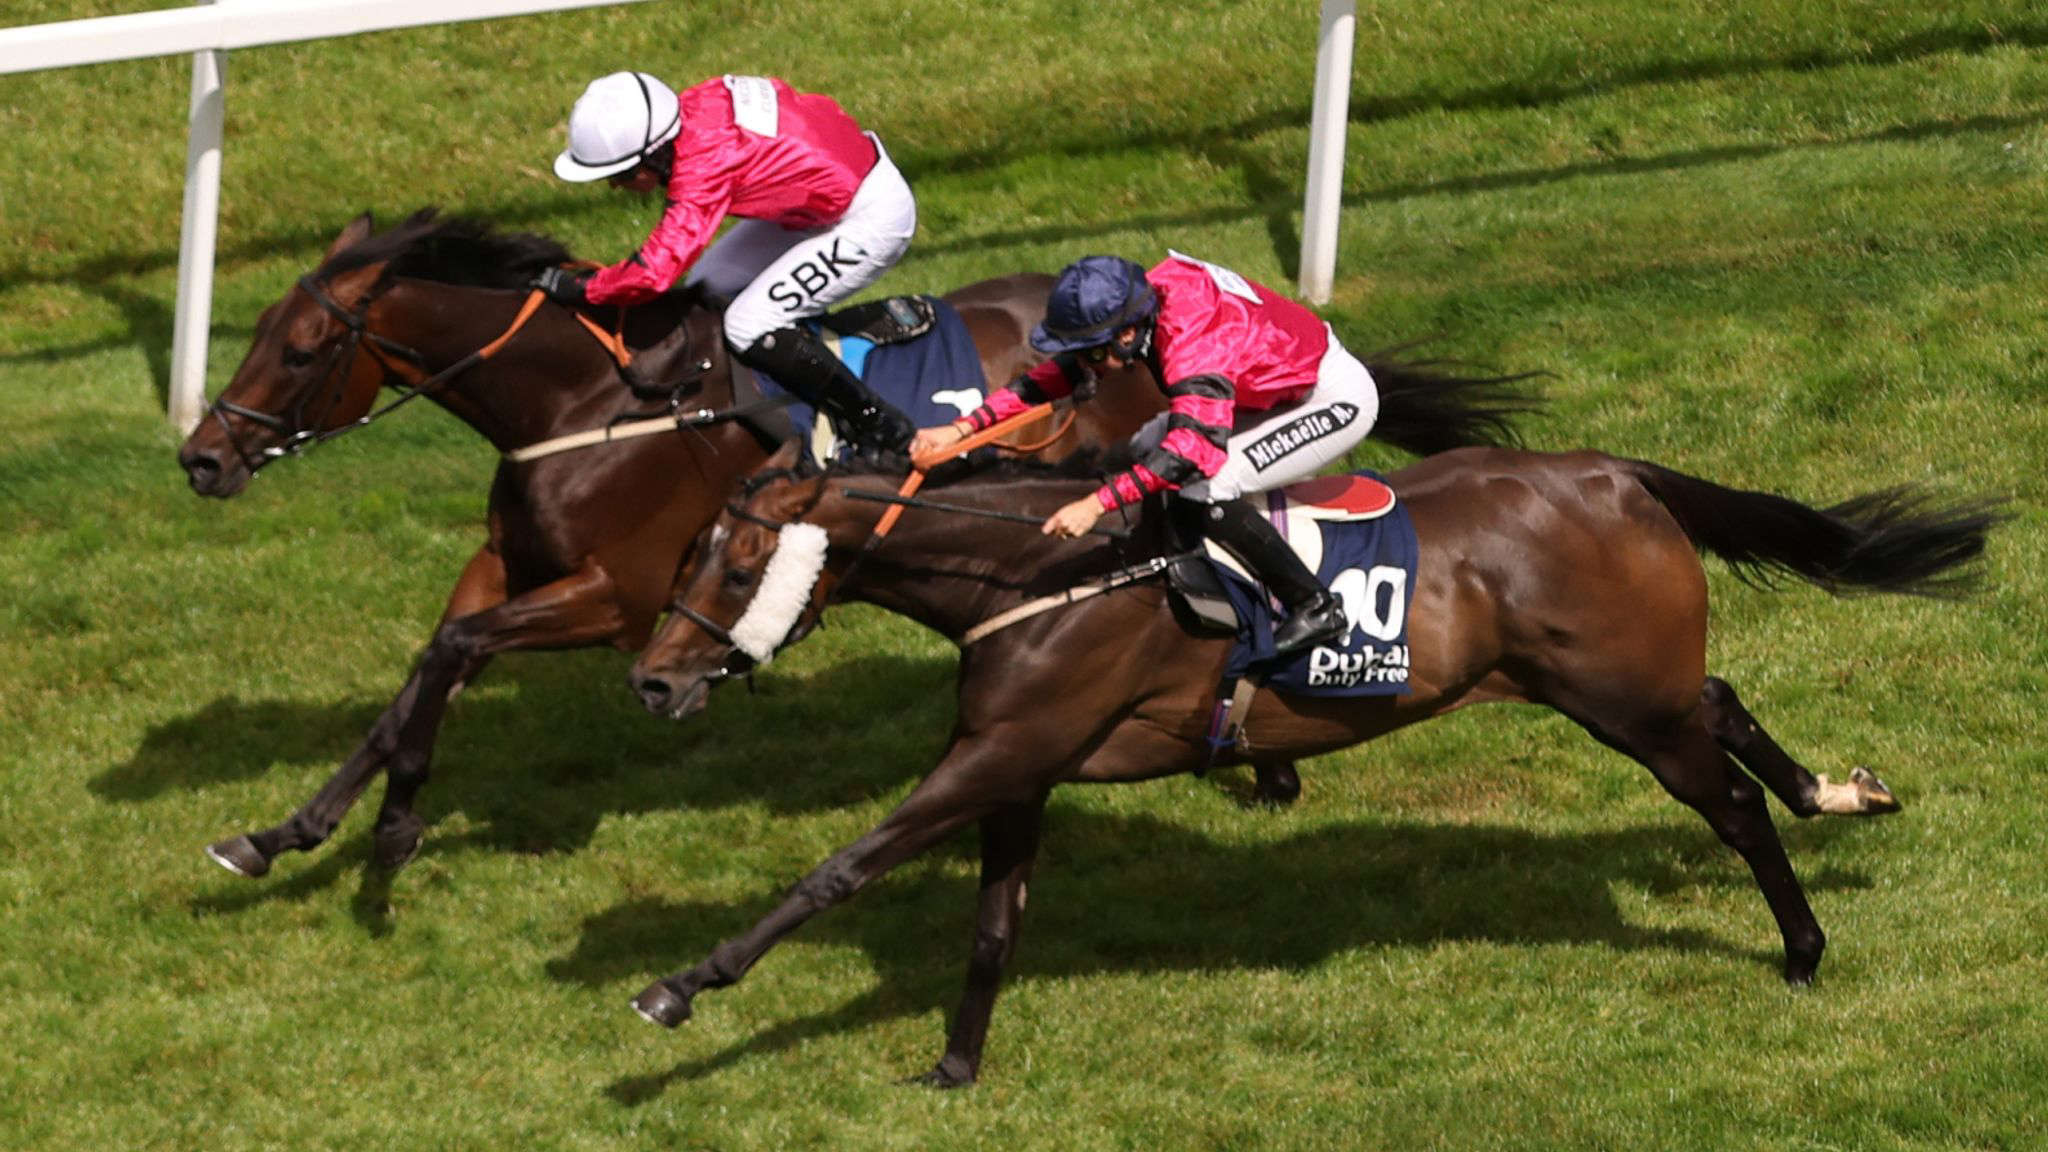 Nicola Currie winning the Sherger Cup Stayers Race